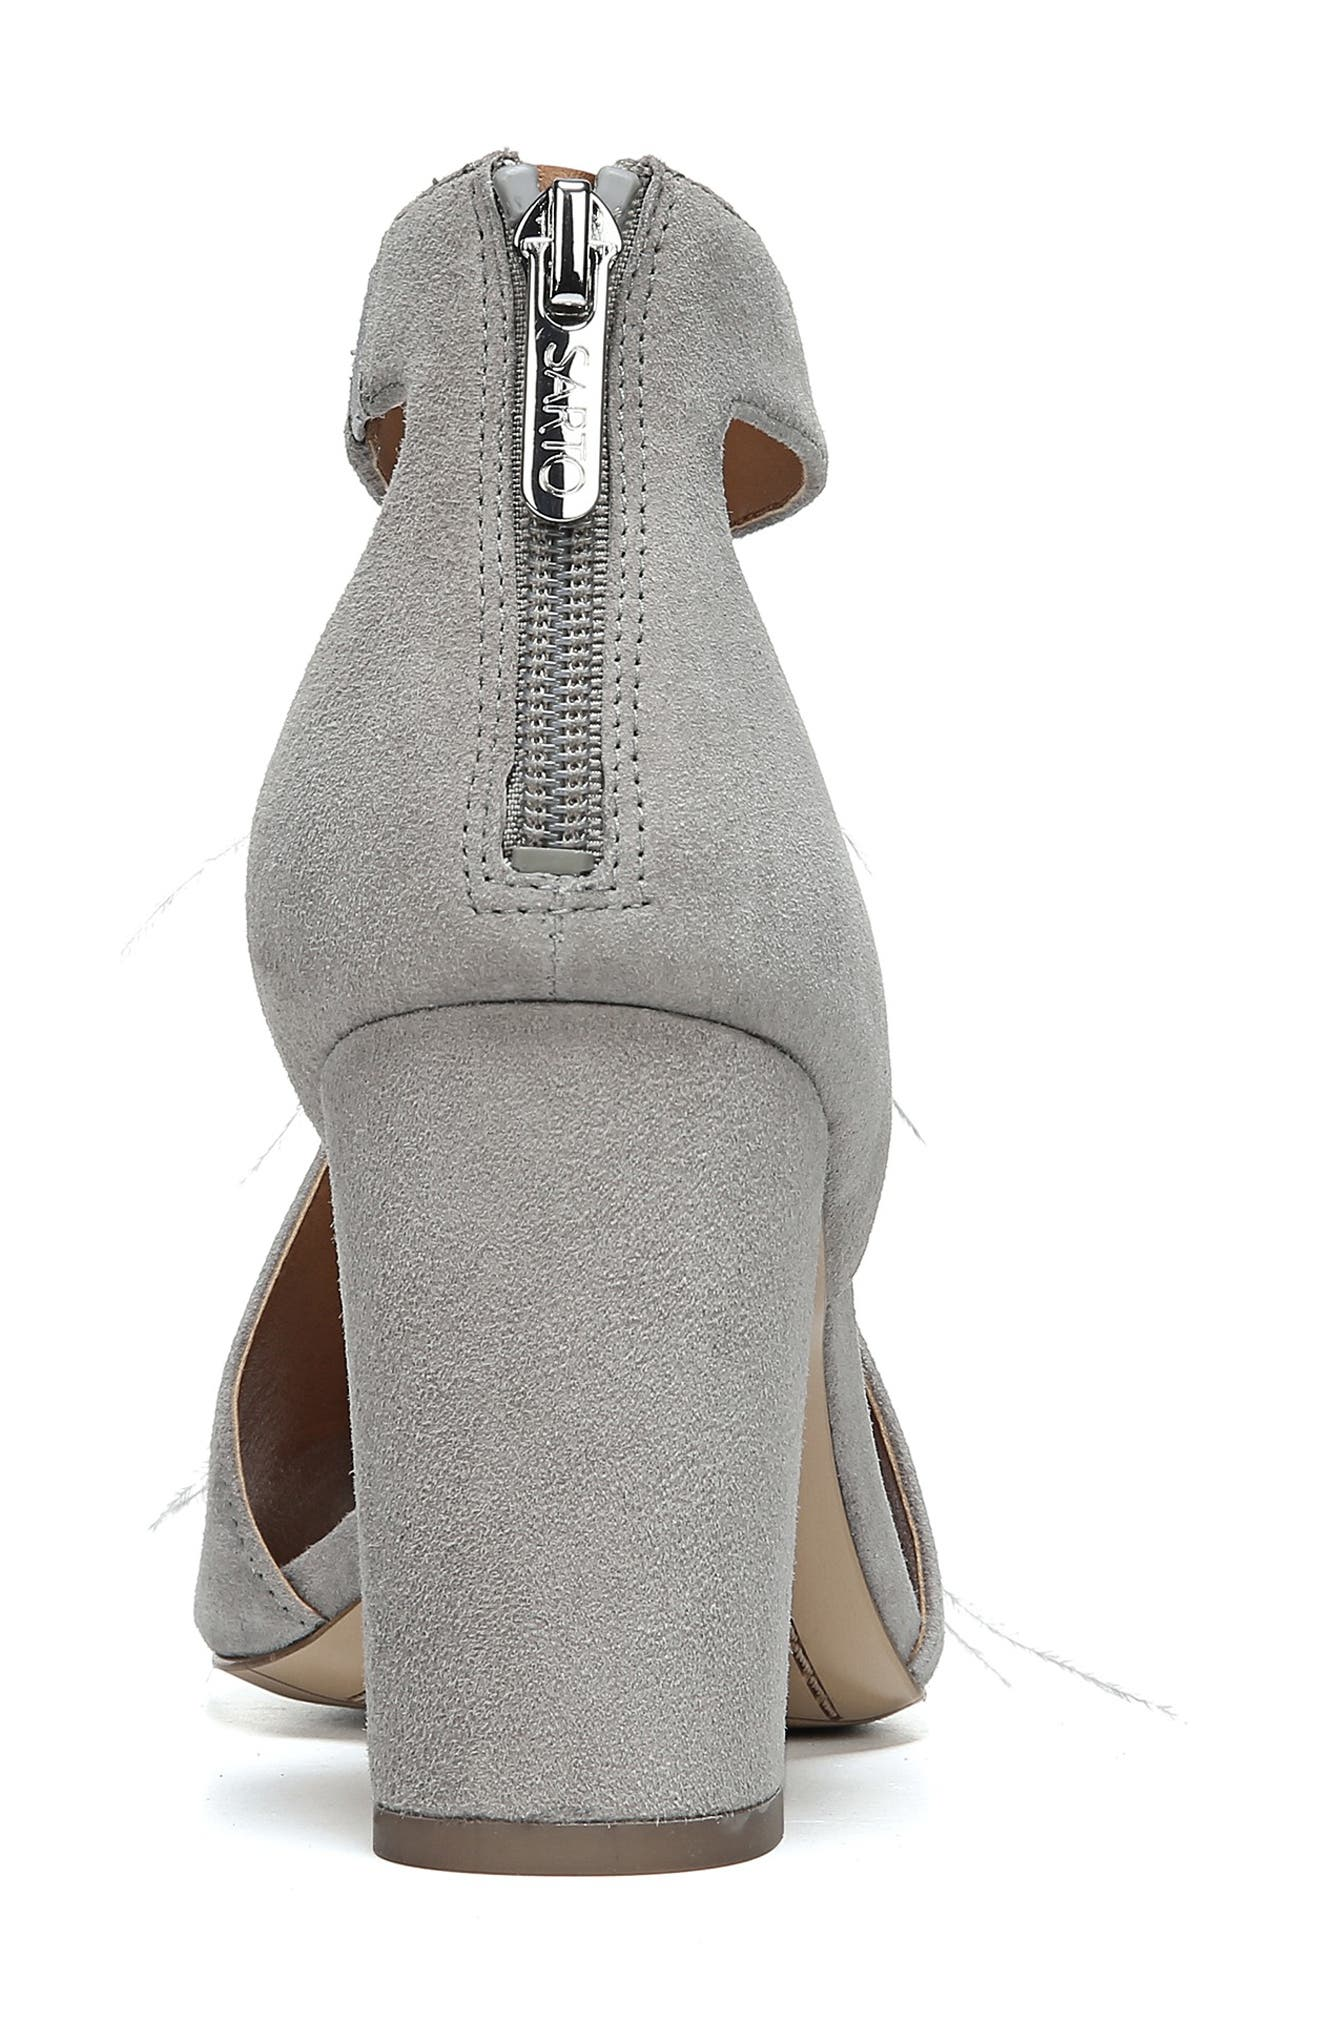 SARTO BY FRANCO SARTO, Olivette Sandal, Alternate thumbnail 9, color, GREYSTONE LEATHER